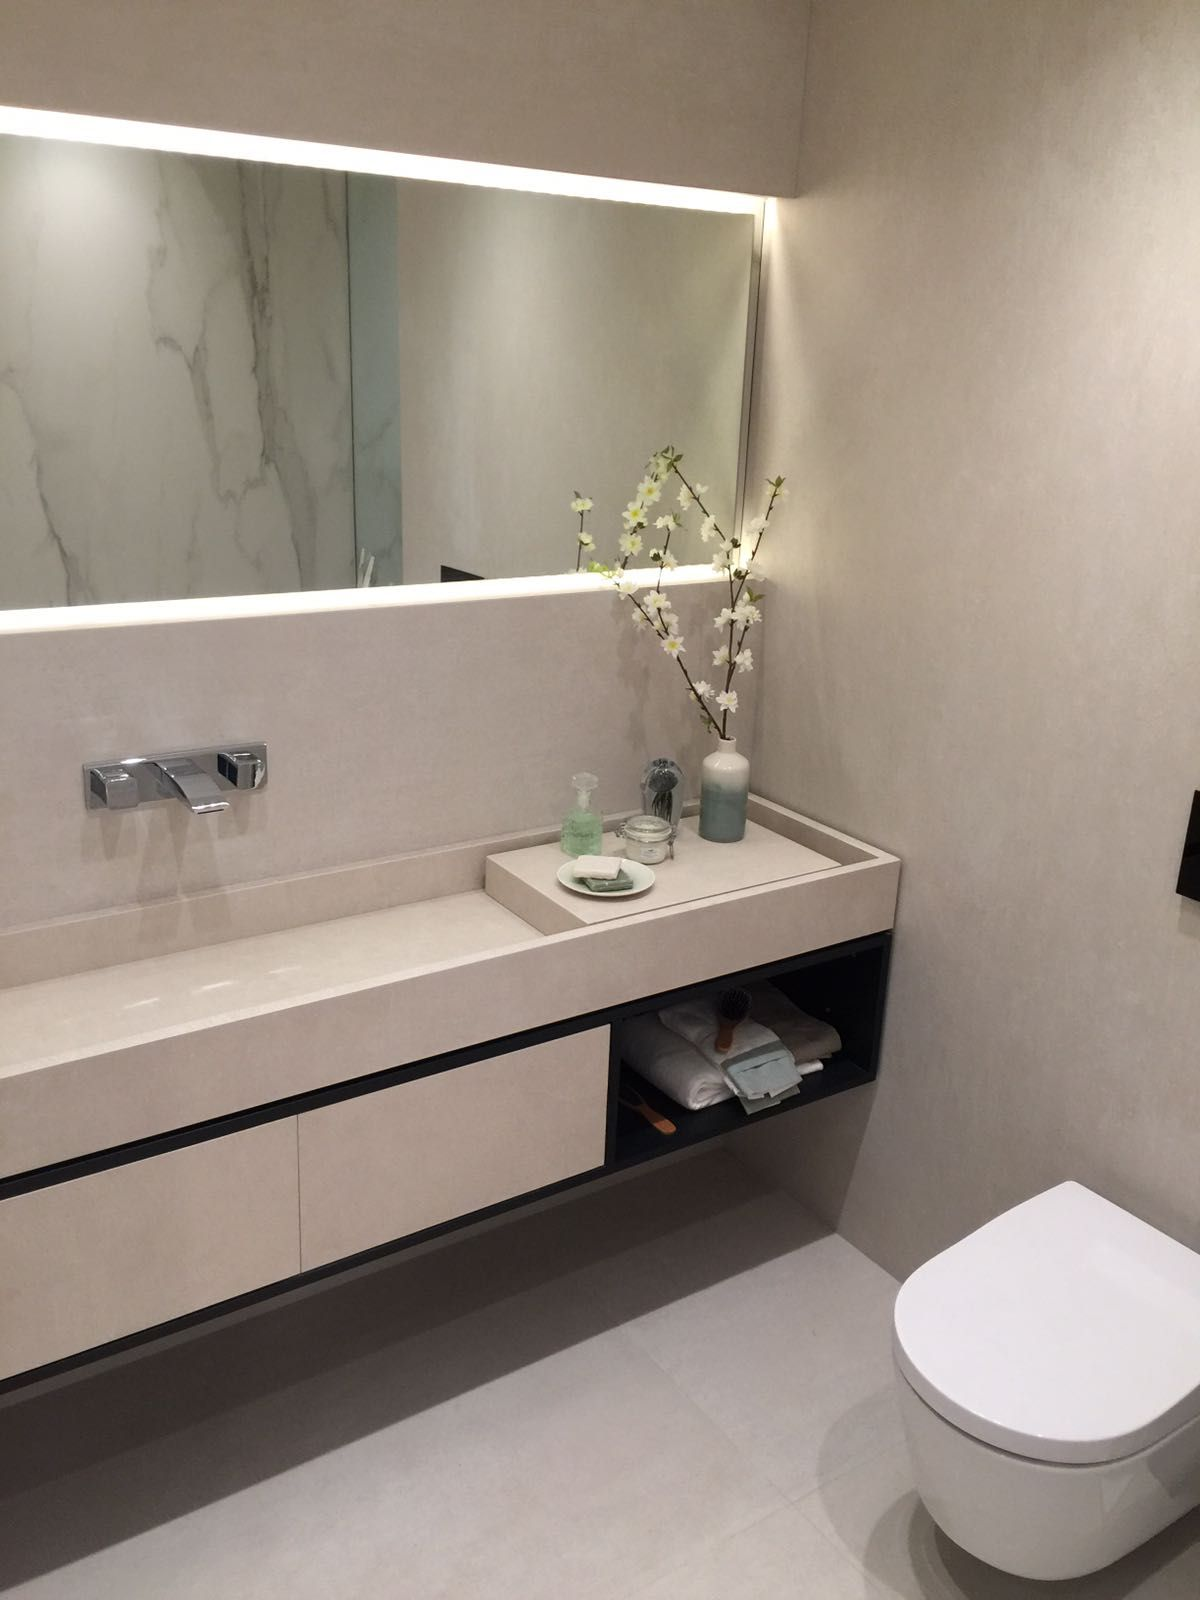 Roca at cevisama 2017 salle de bain pinterest tile roca tile usa is a world wide leader in manufacturing distributing and marketing of high quality ceramic tiles dailygadgetfo Images